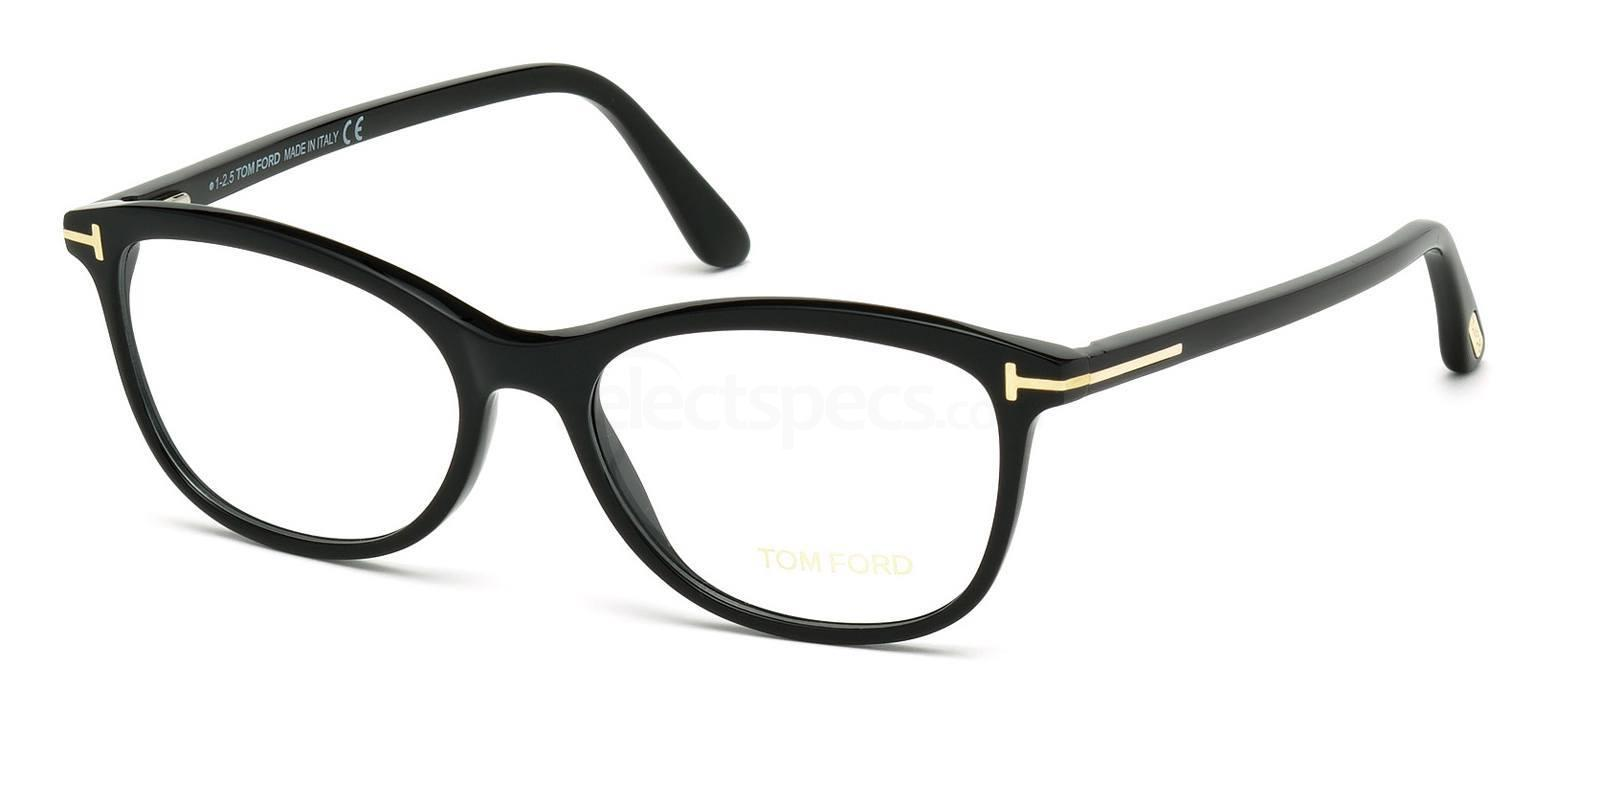 001 FT5388 Glasses, Tom Ford